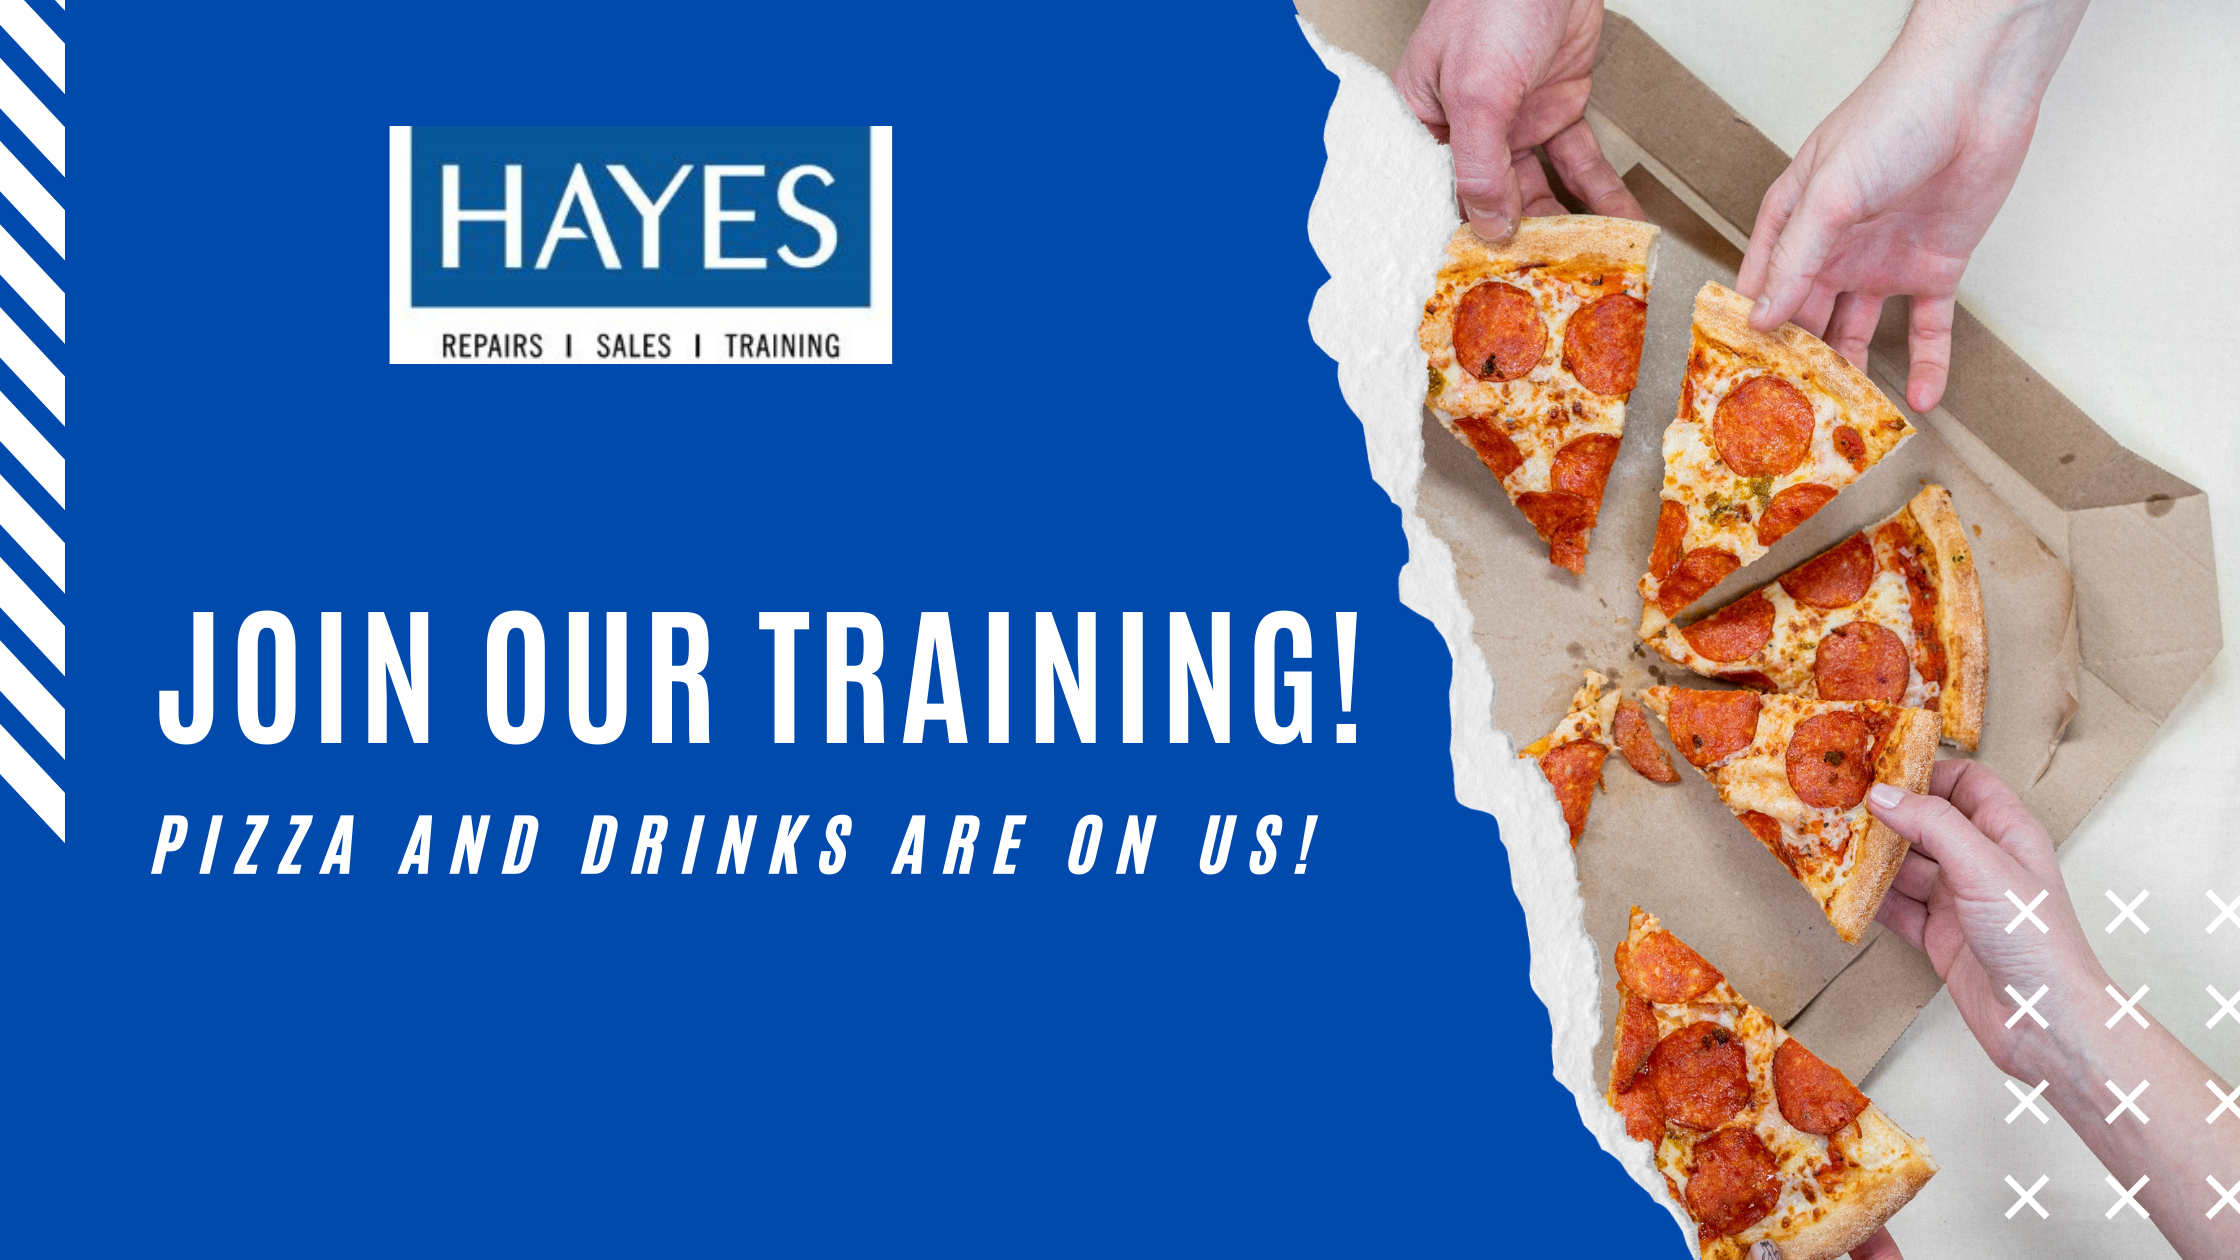 Hayes Training Banner with Pizza